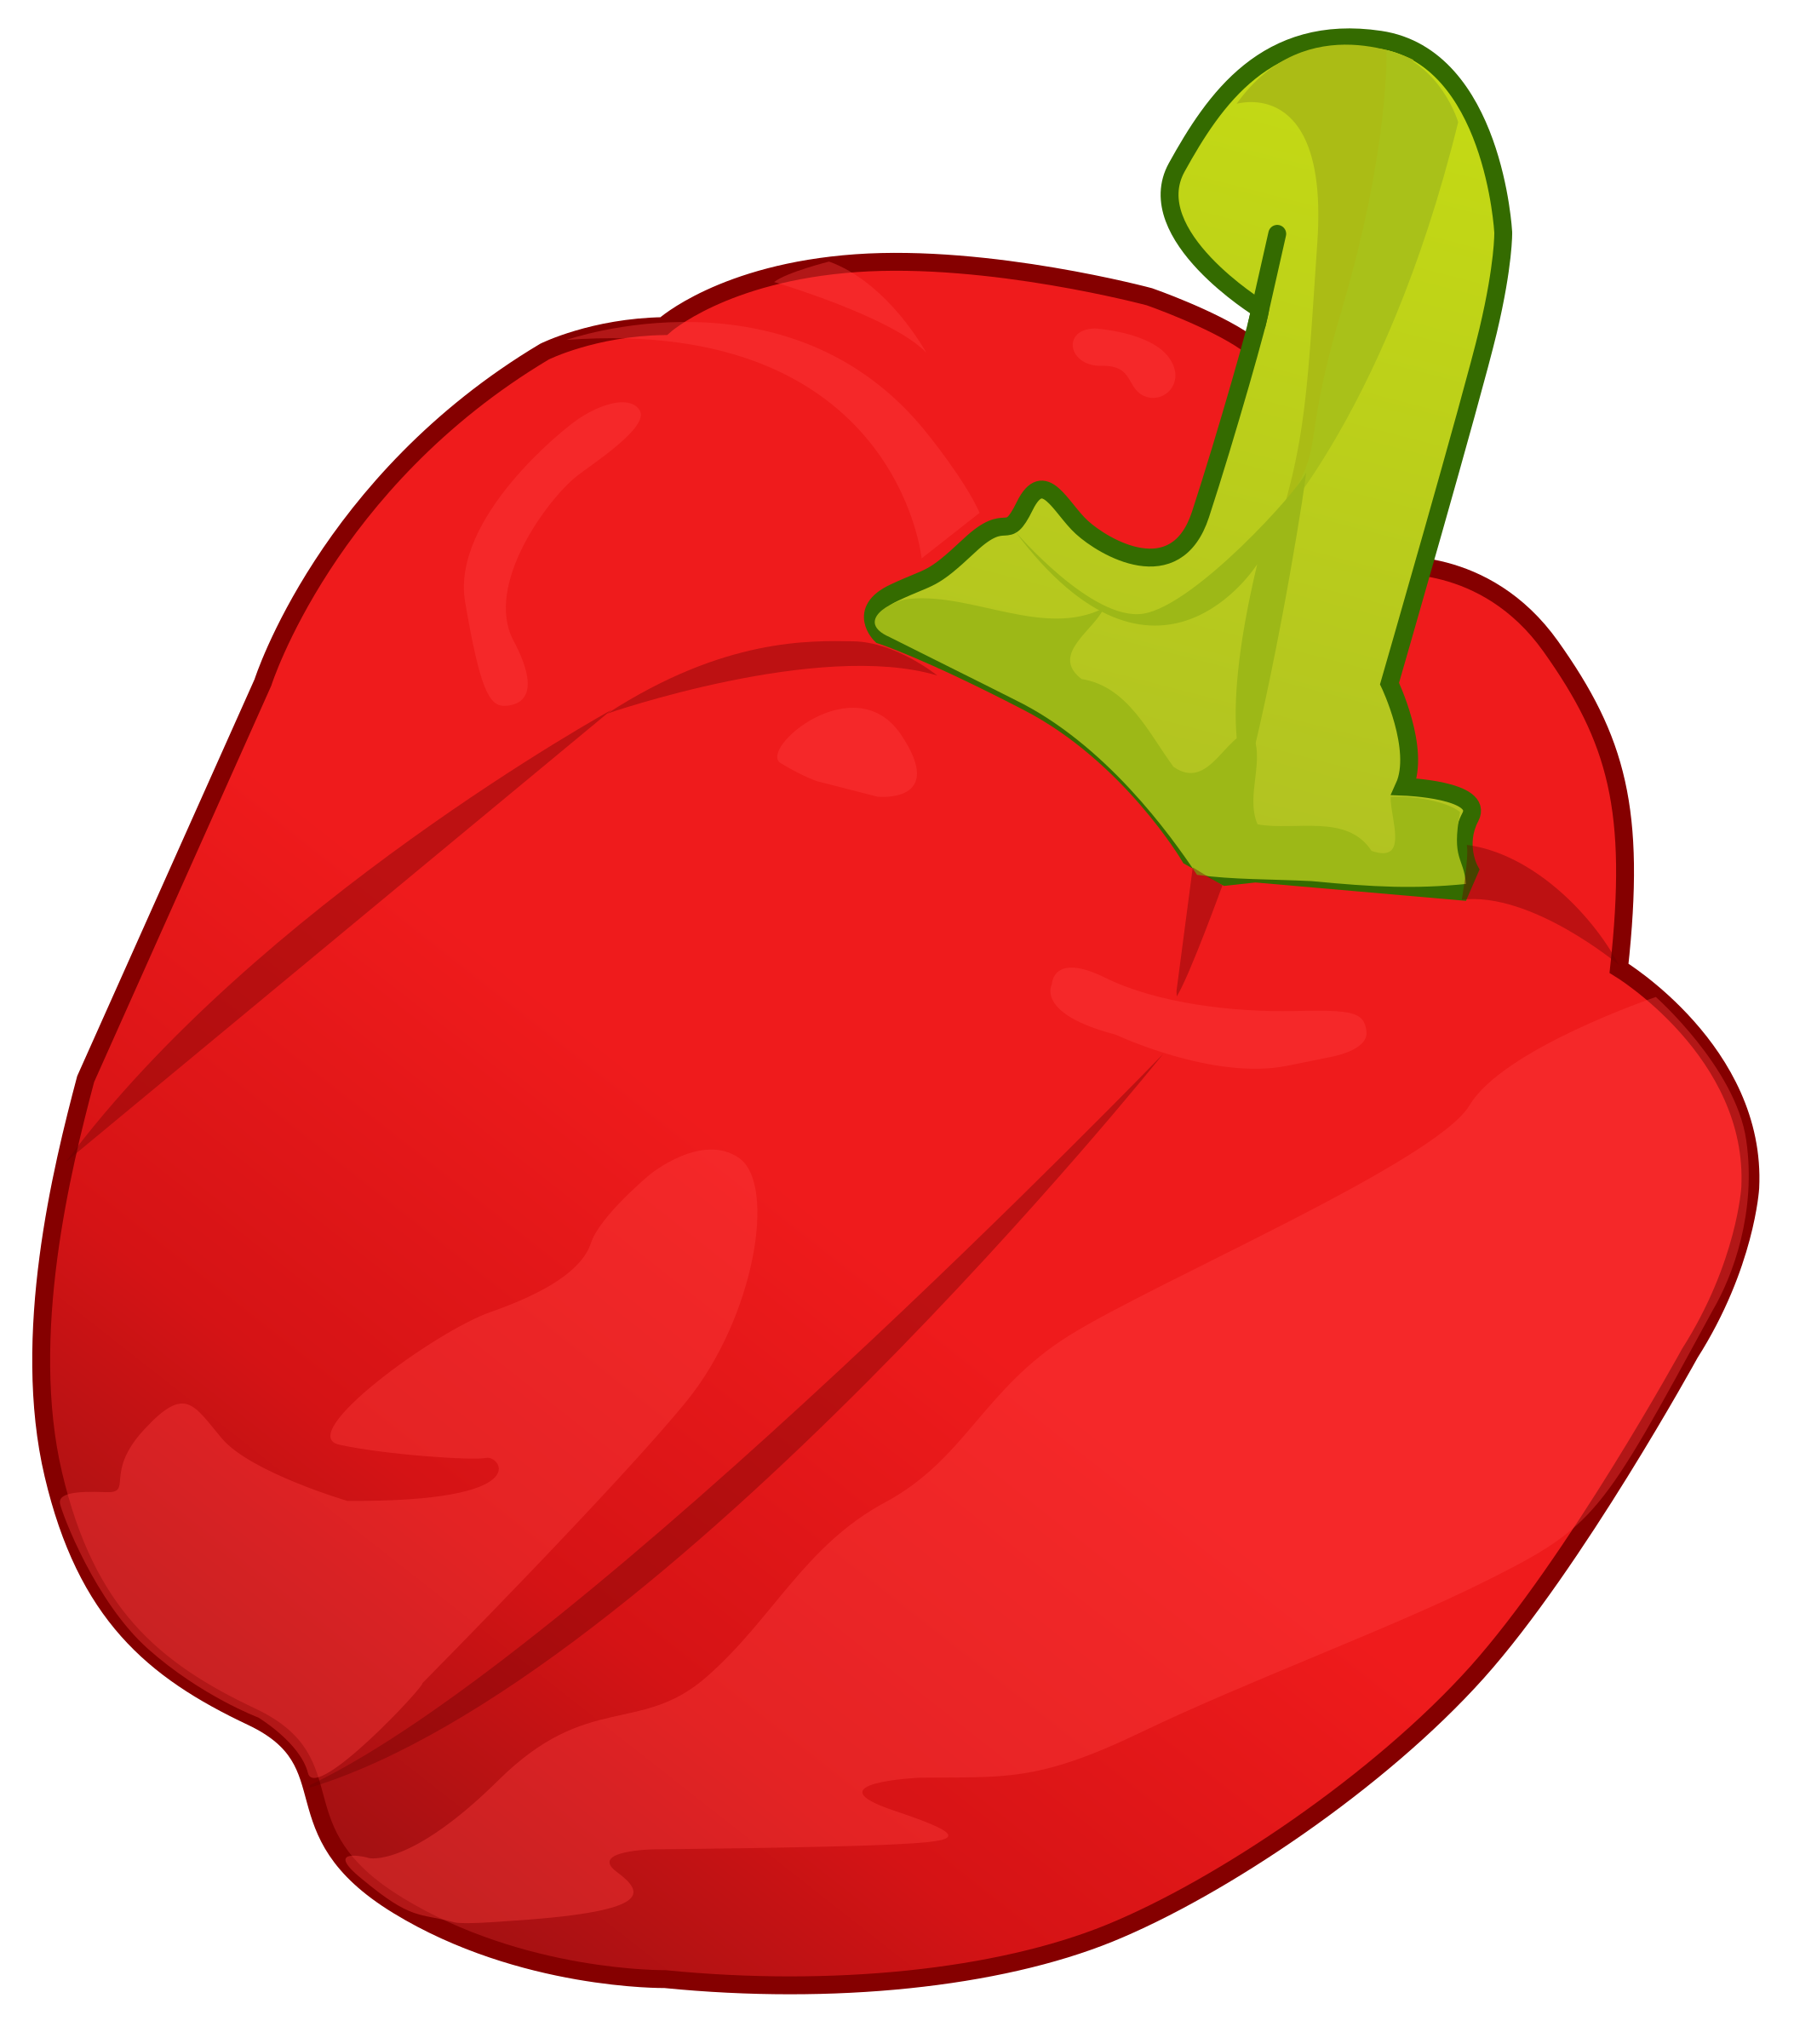 red pepper by flomar